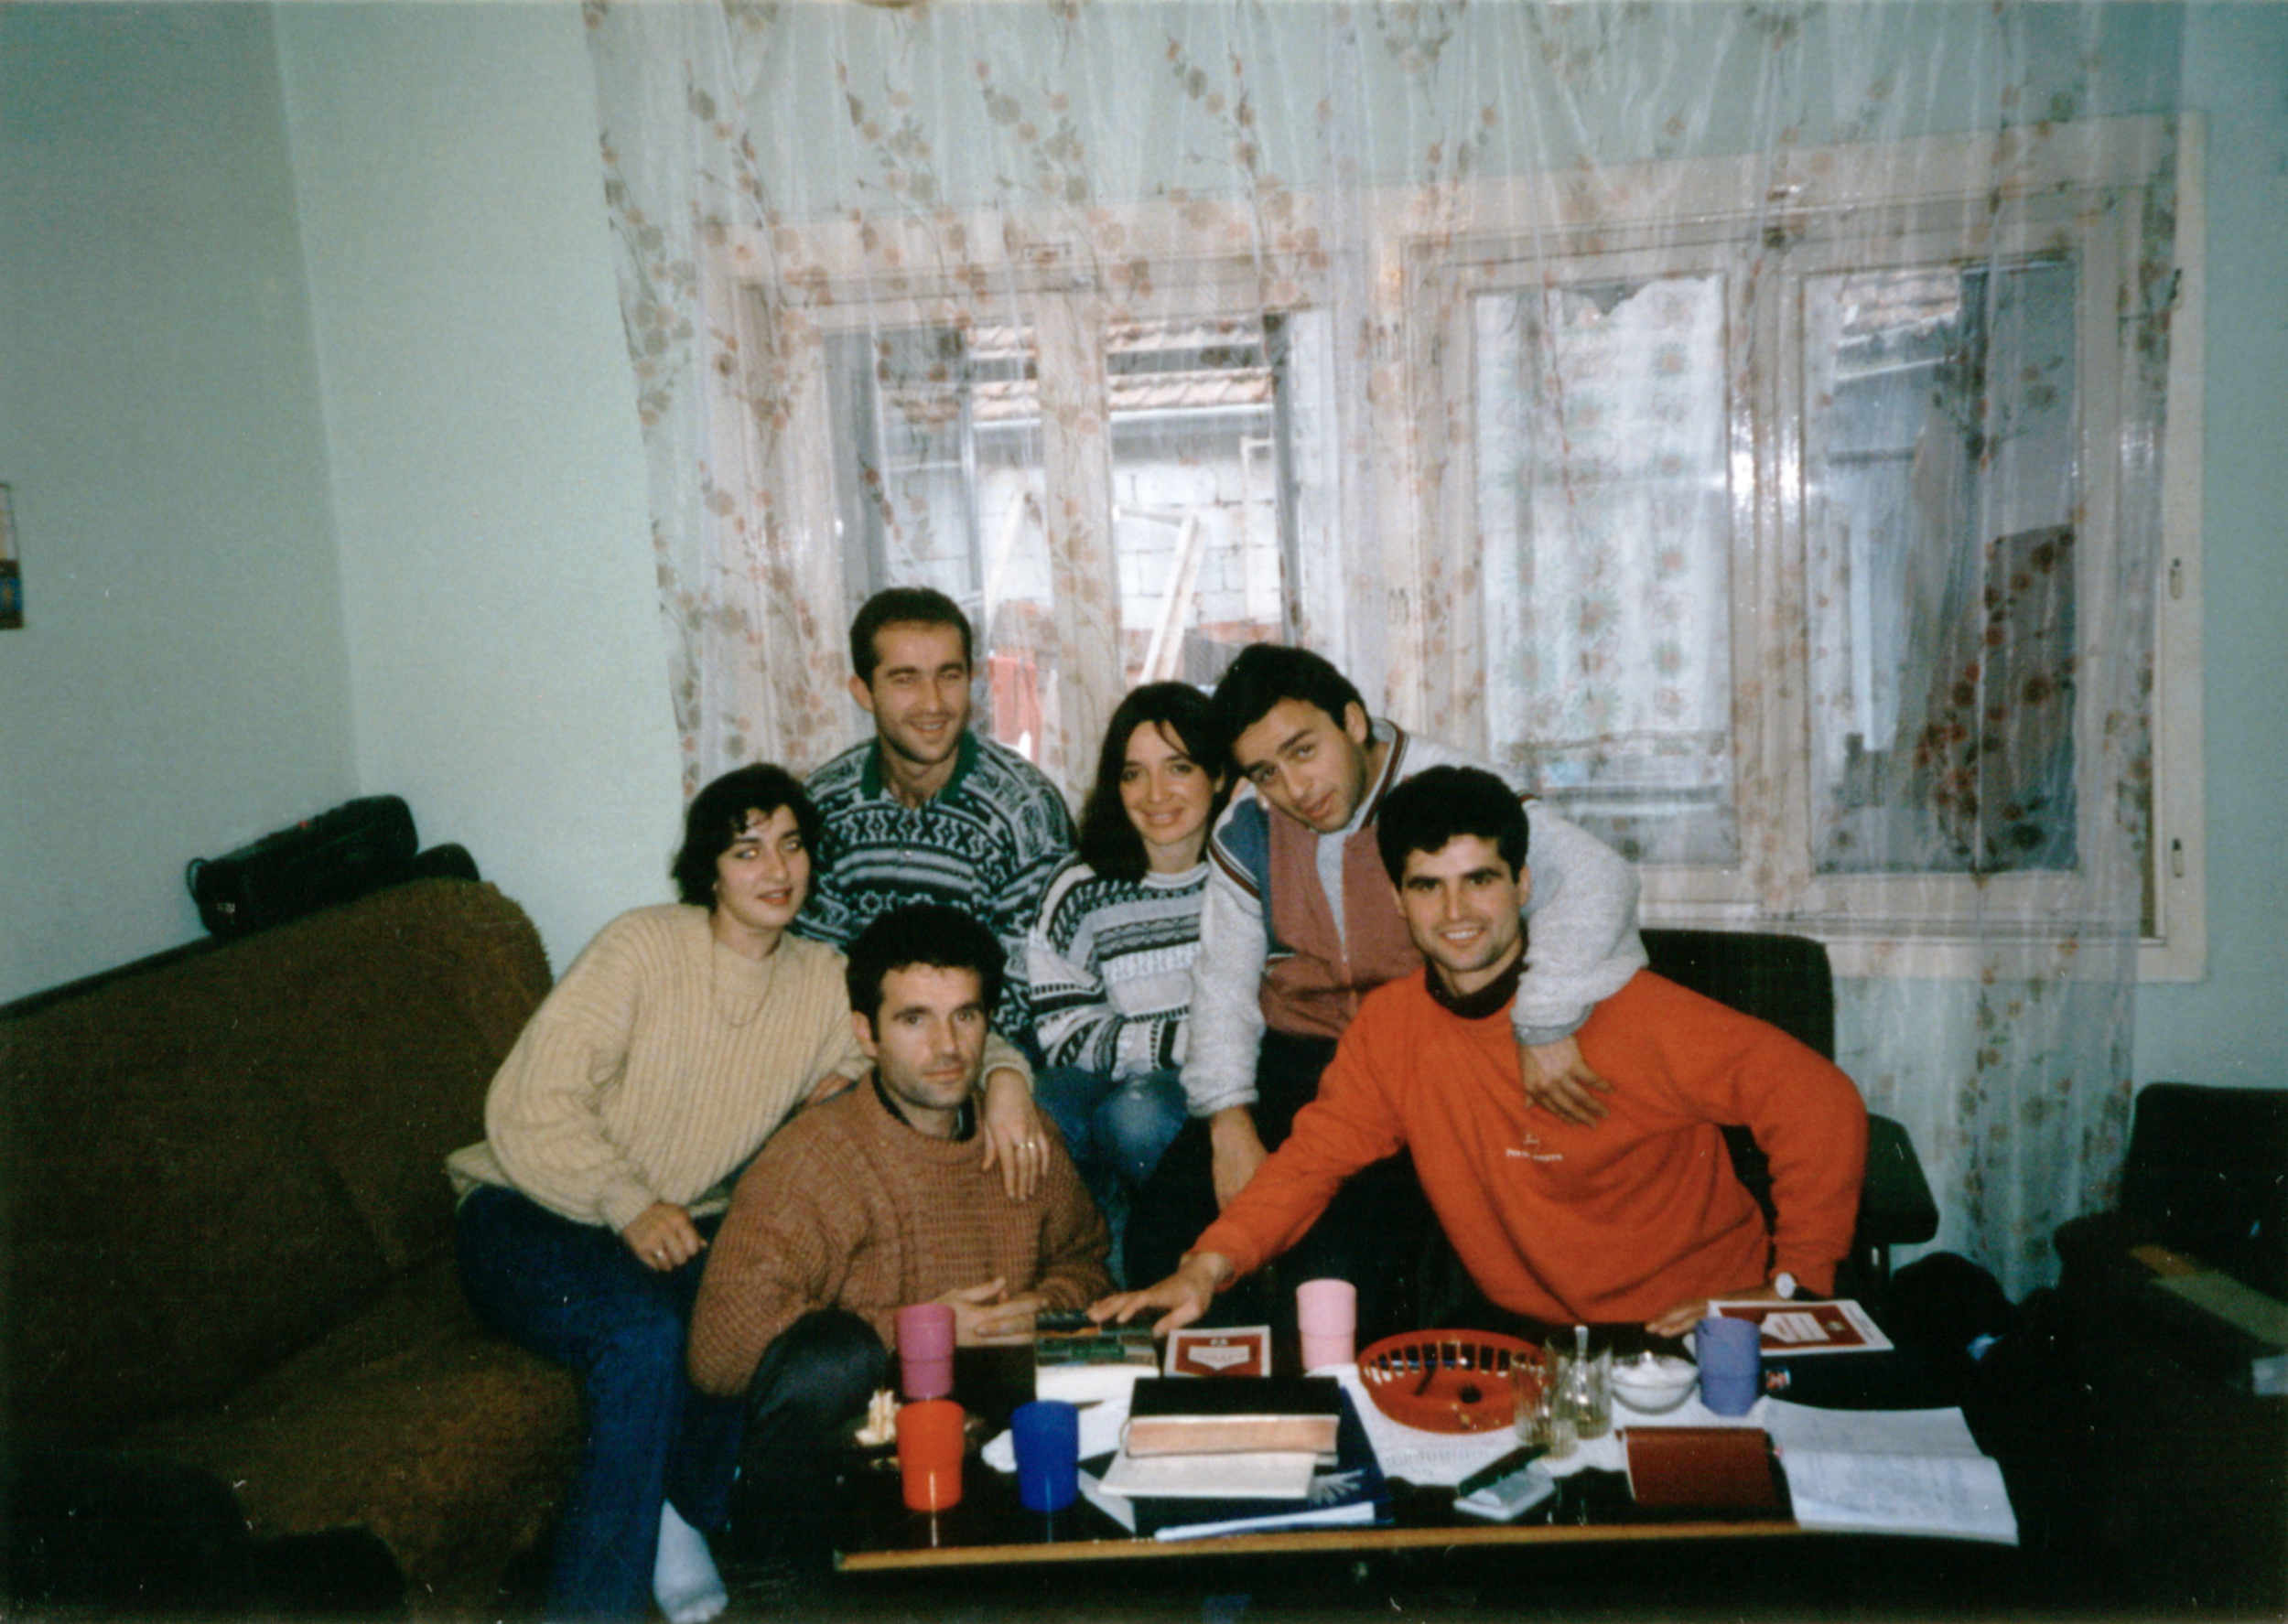 The first members of B.U.M. Church in 1994